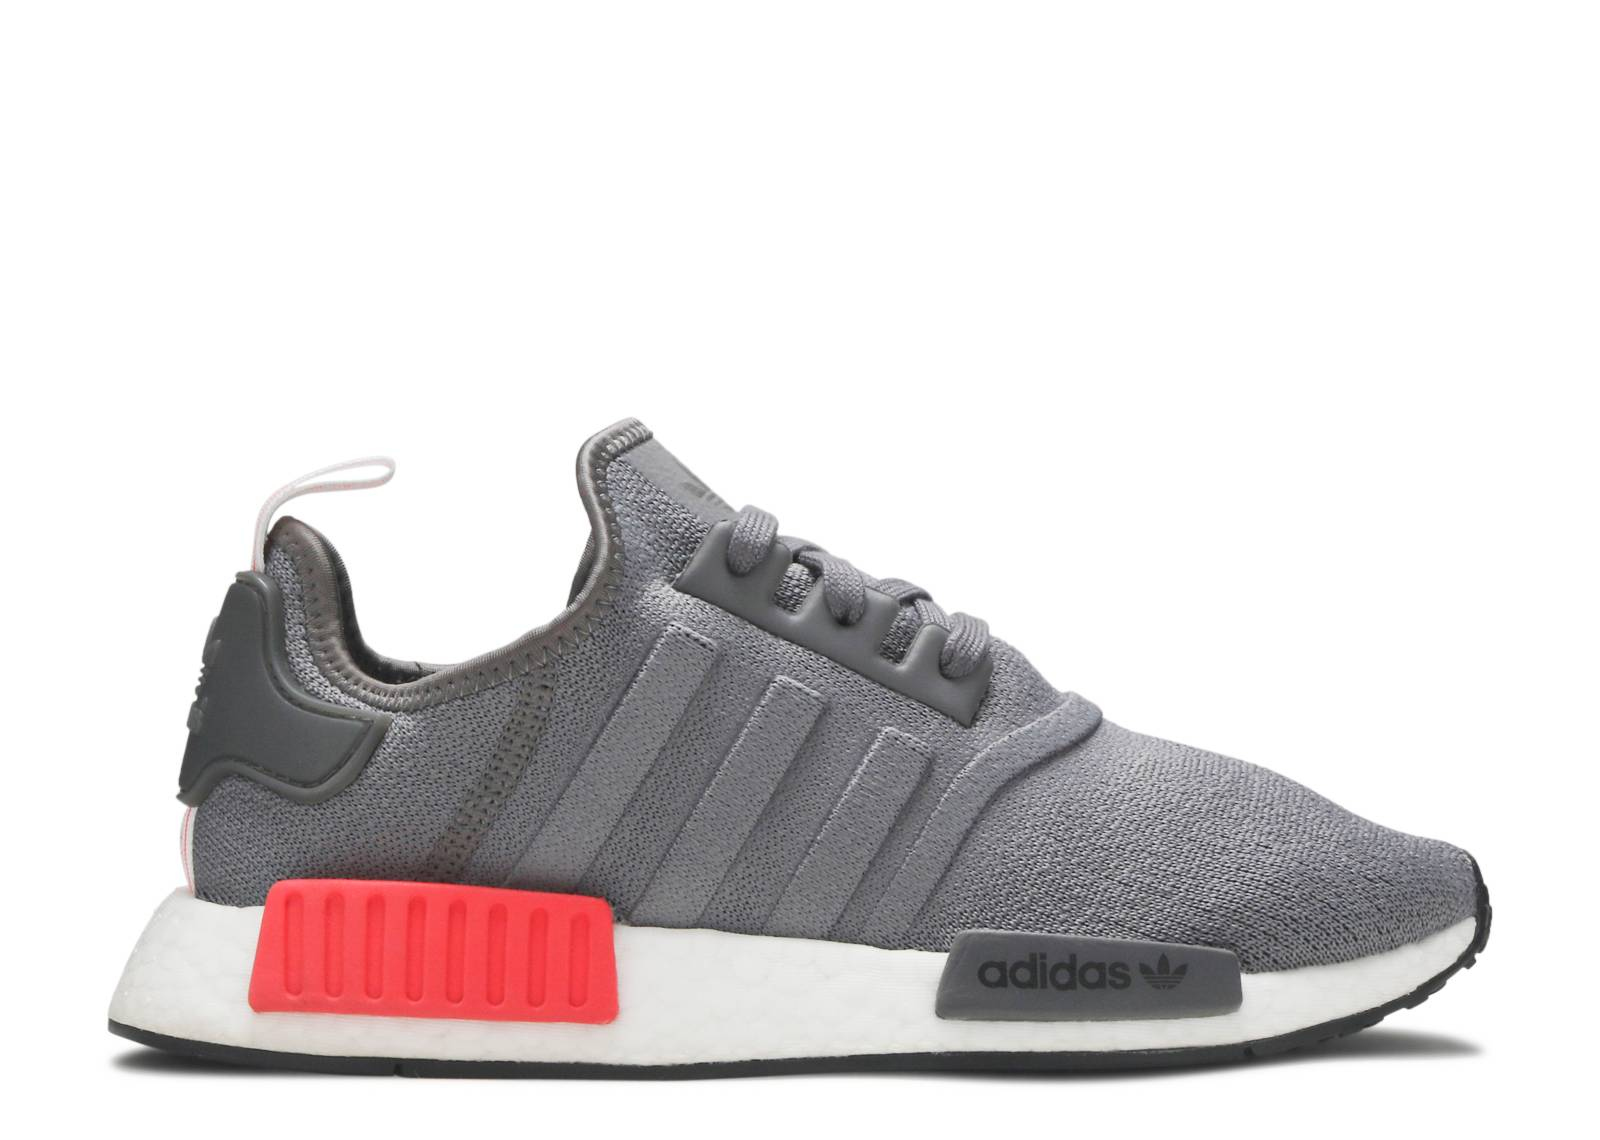 db30339952655 Adidas NMD - adidas Originals Men's & Women's Shoes | Flight Club